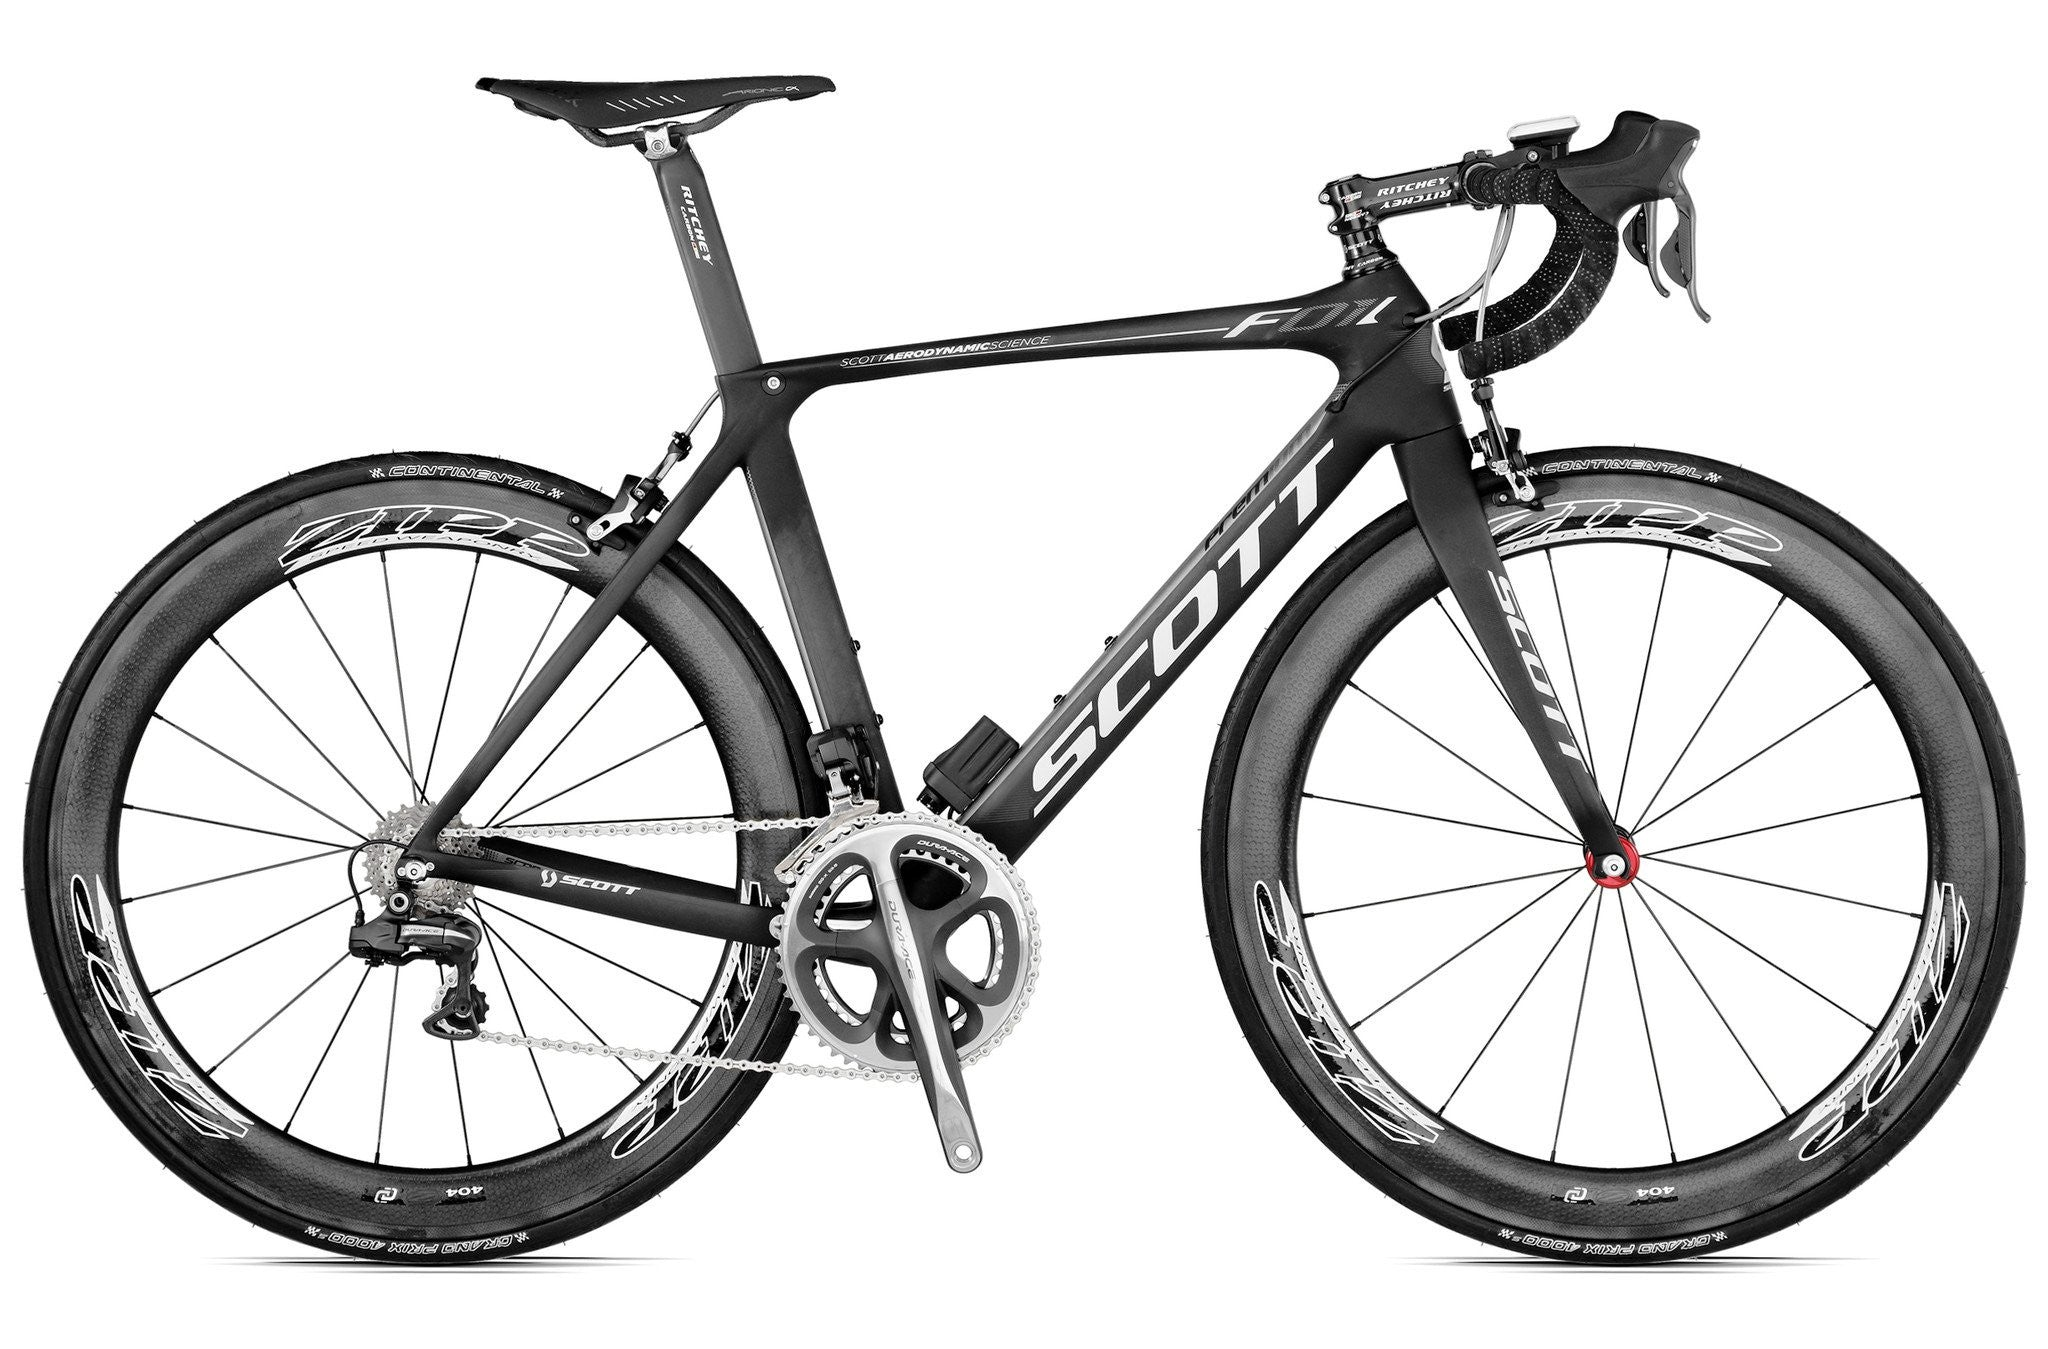 2012 Scott Foil Premium Road Bike